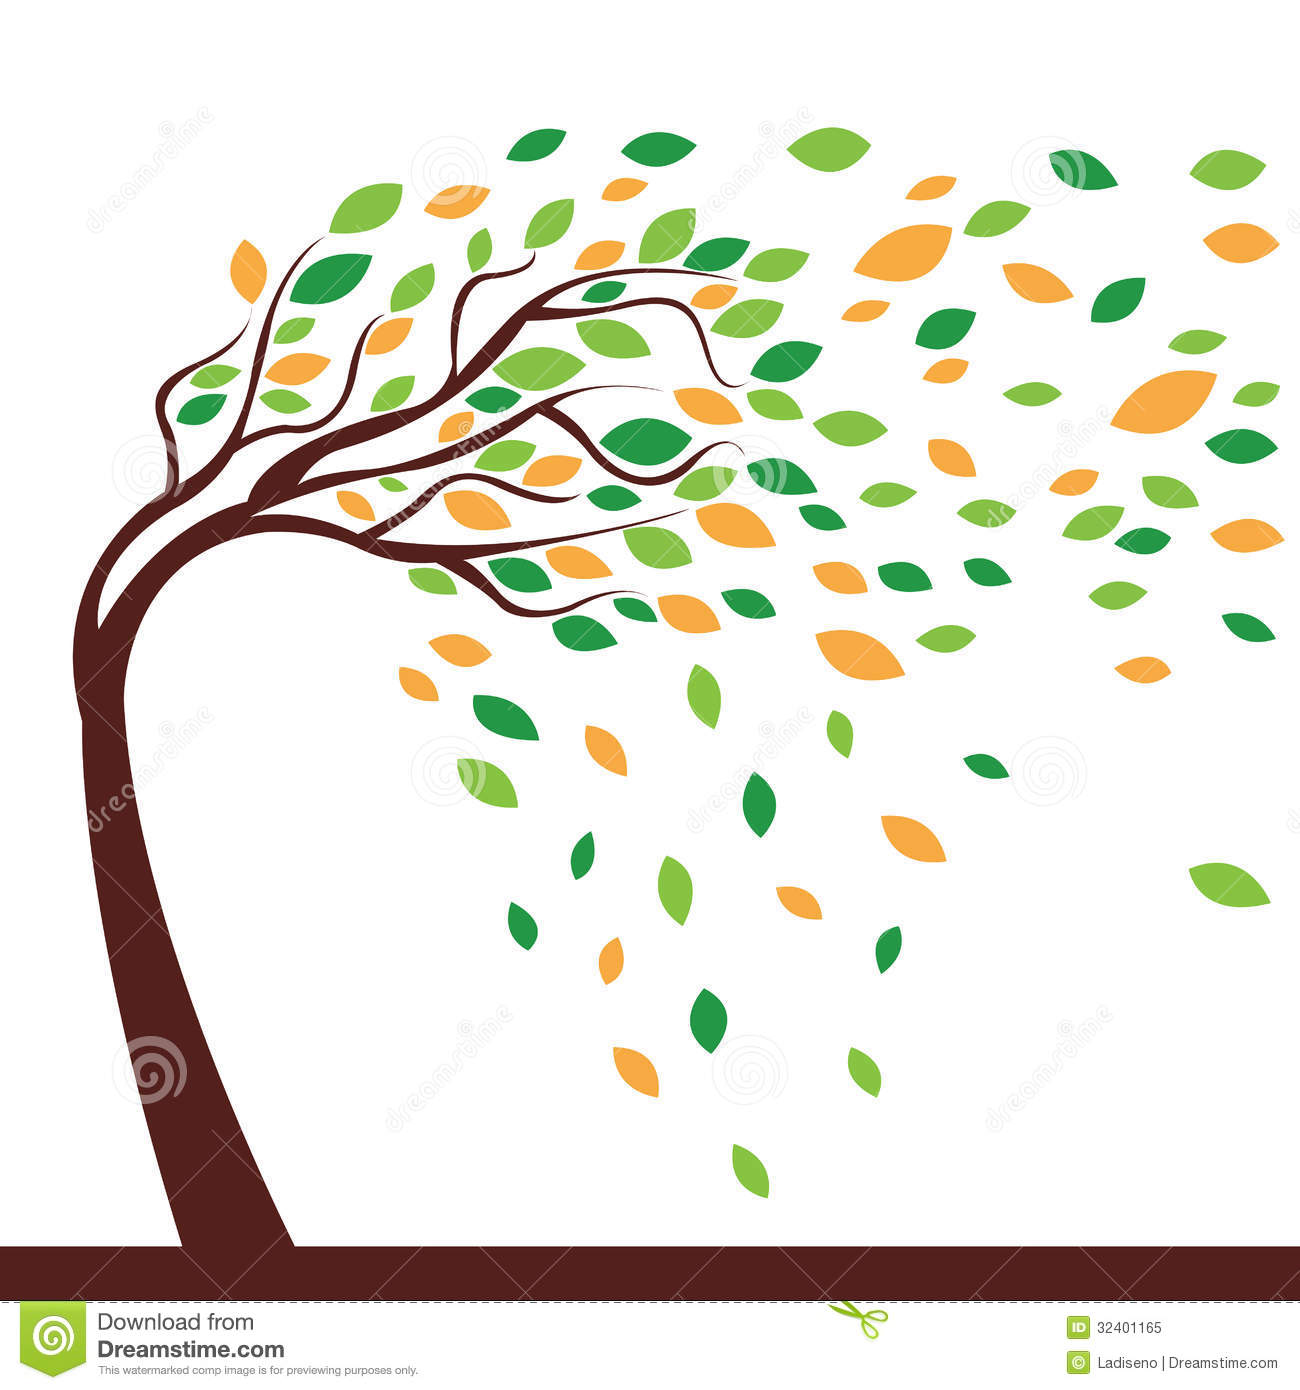 Bending trees free clipart images.